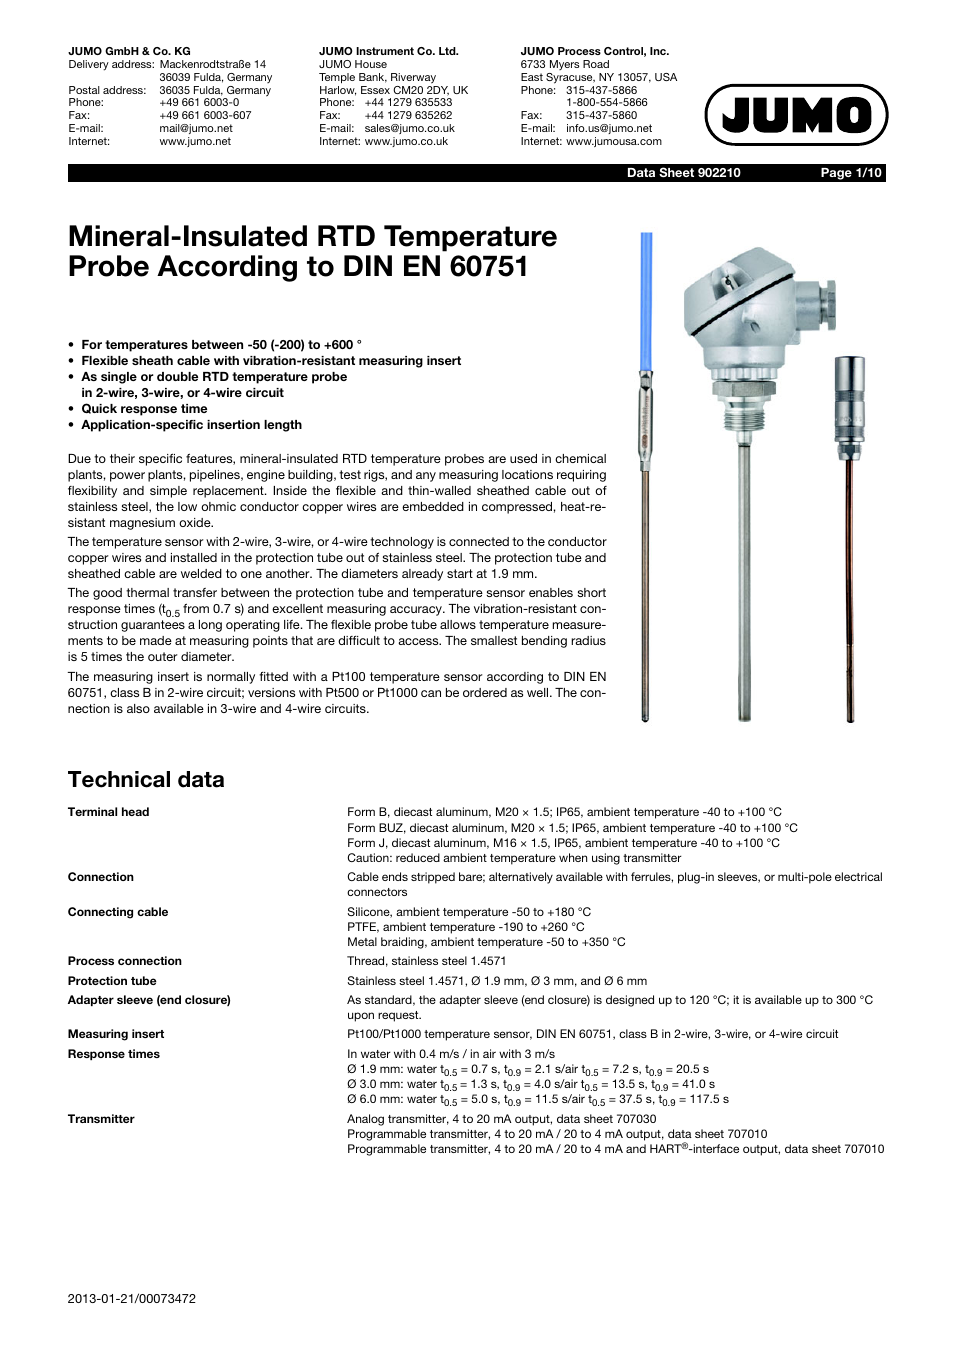 JUMO 902210 Mineral-Insulated RTD Temperature Probes with Bare ...